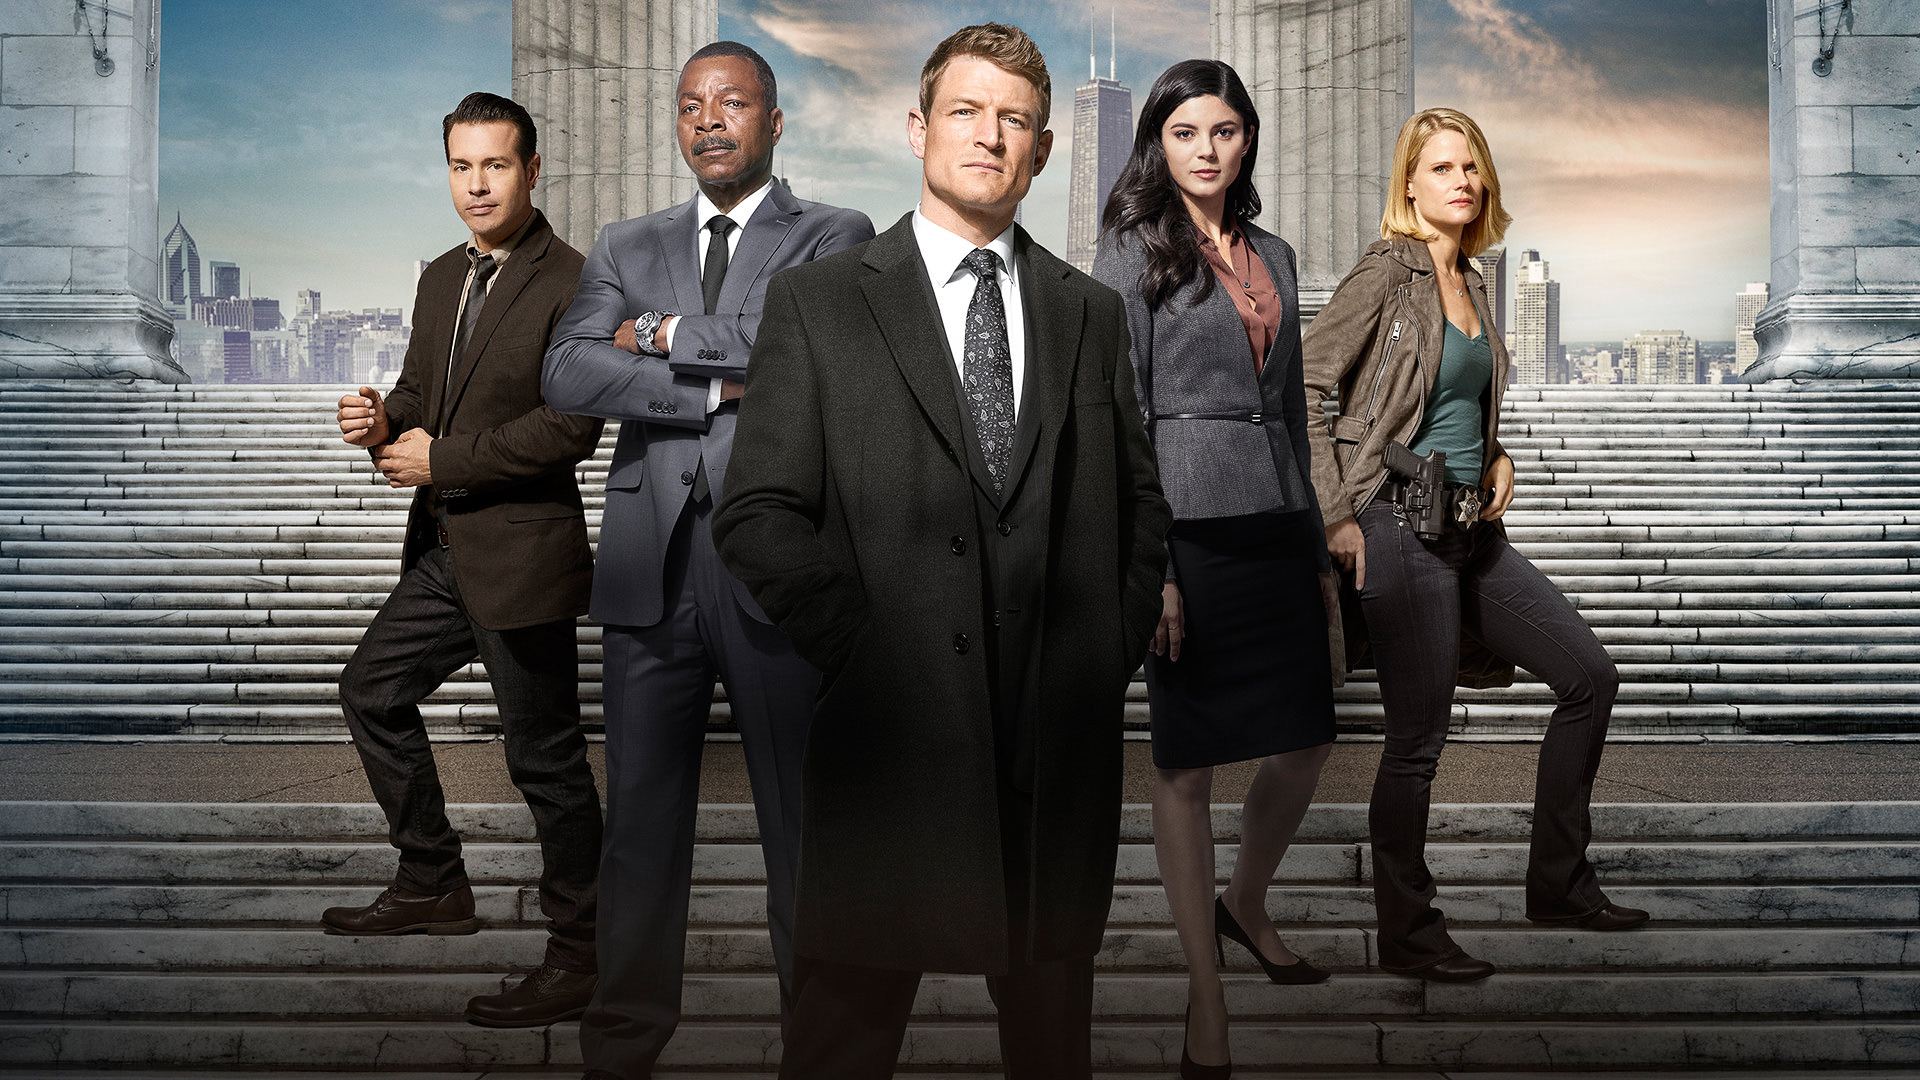 Show Chicago Justice